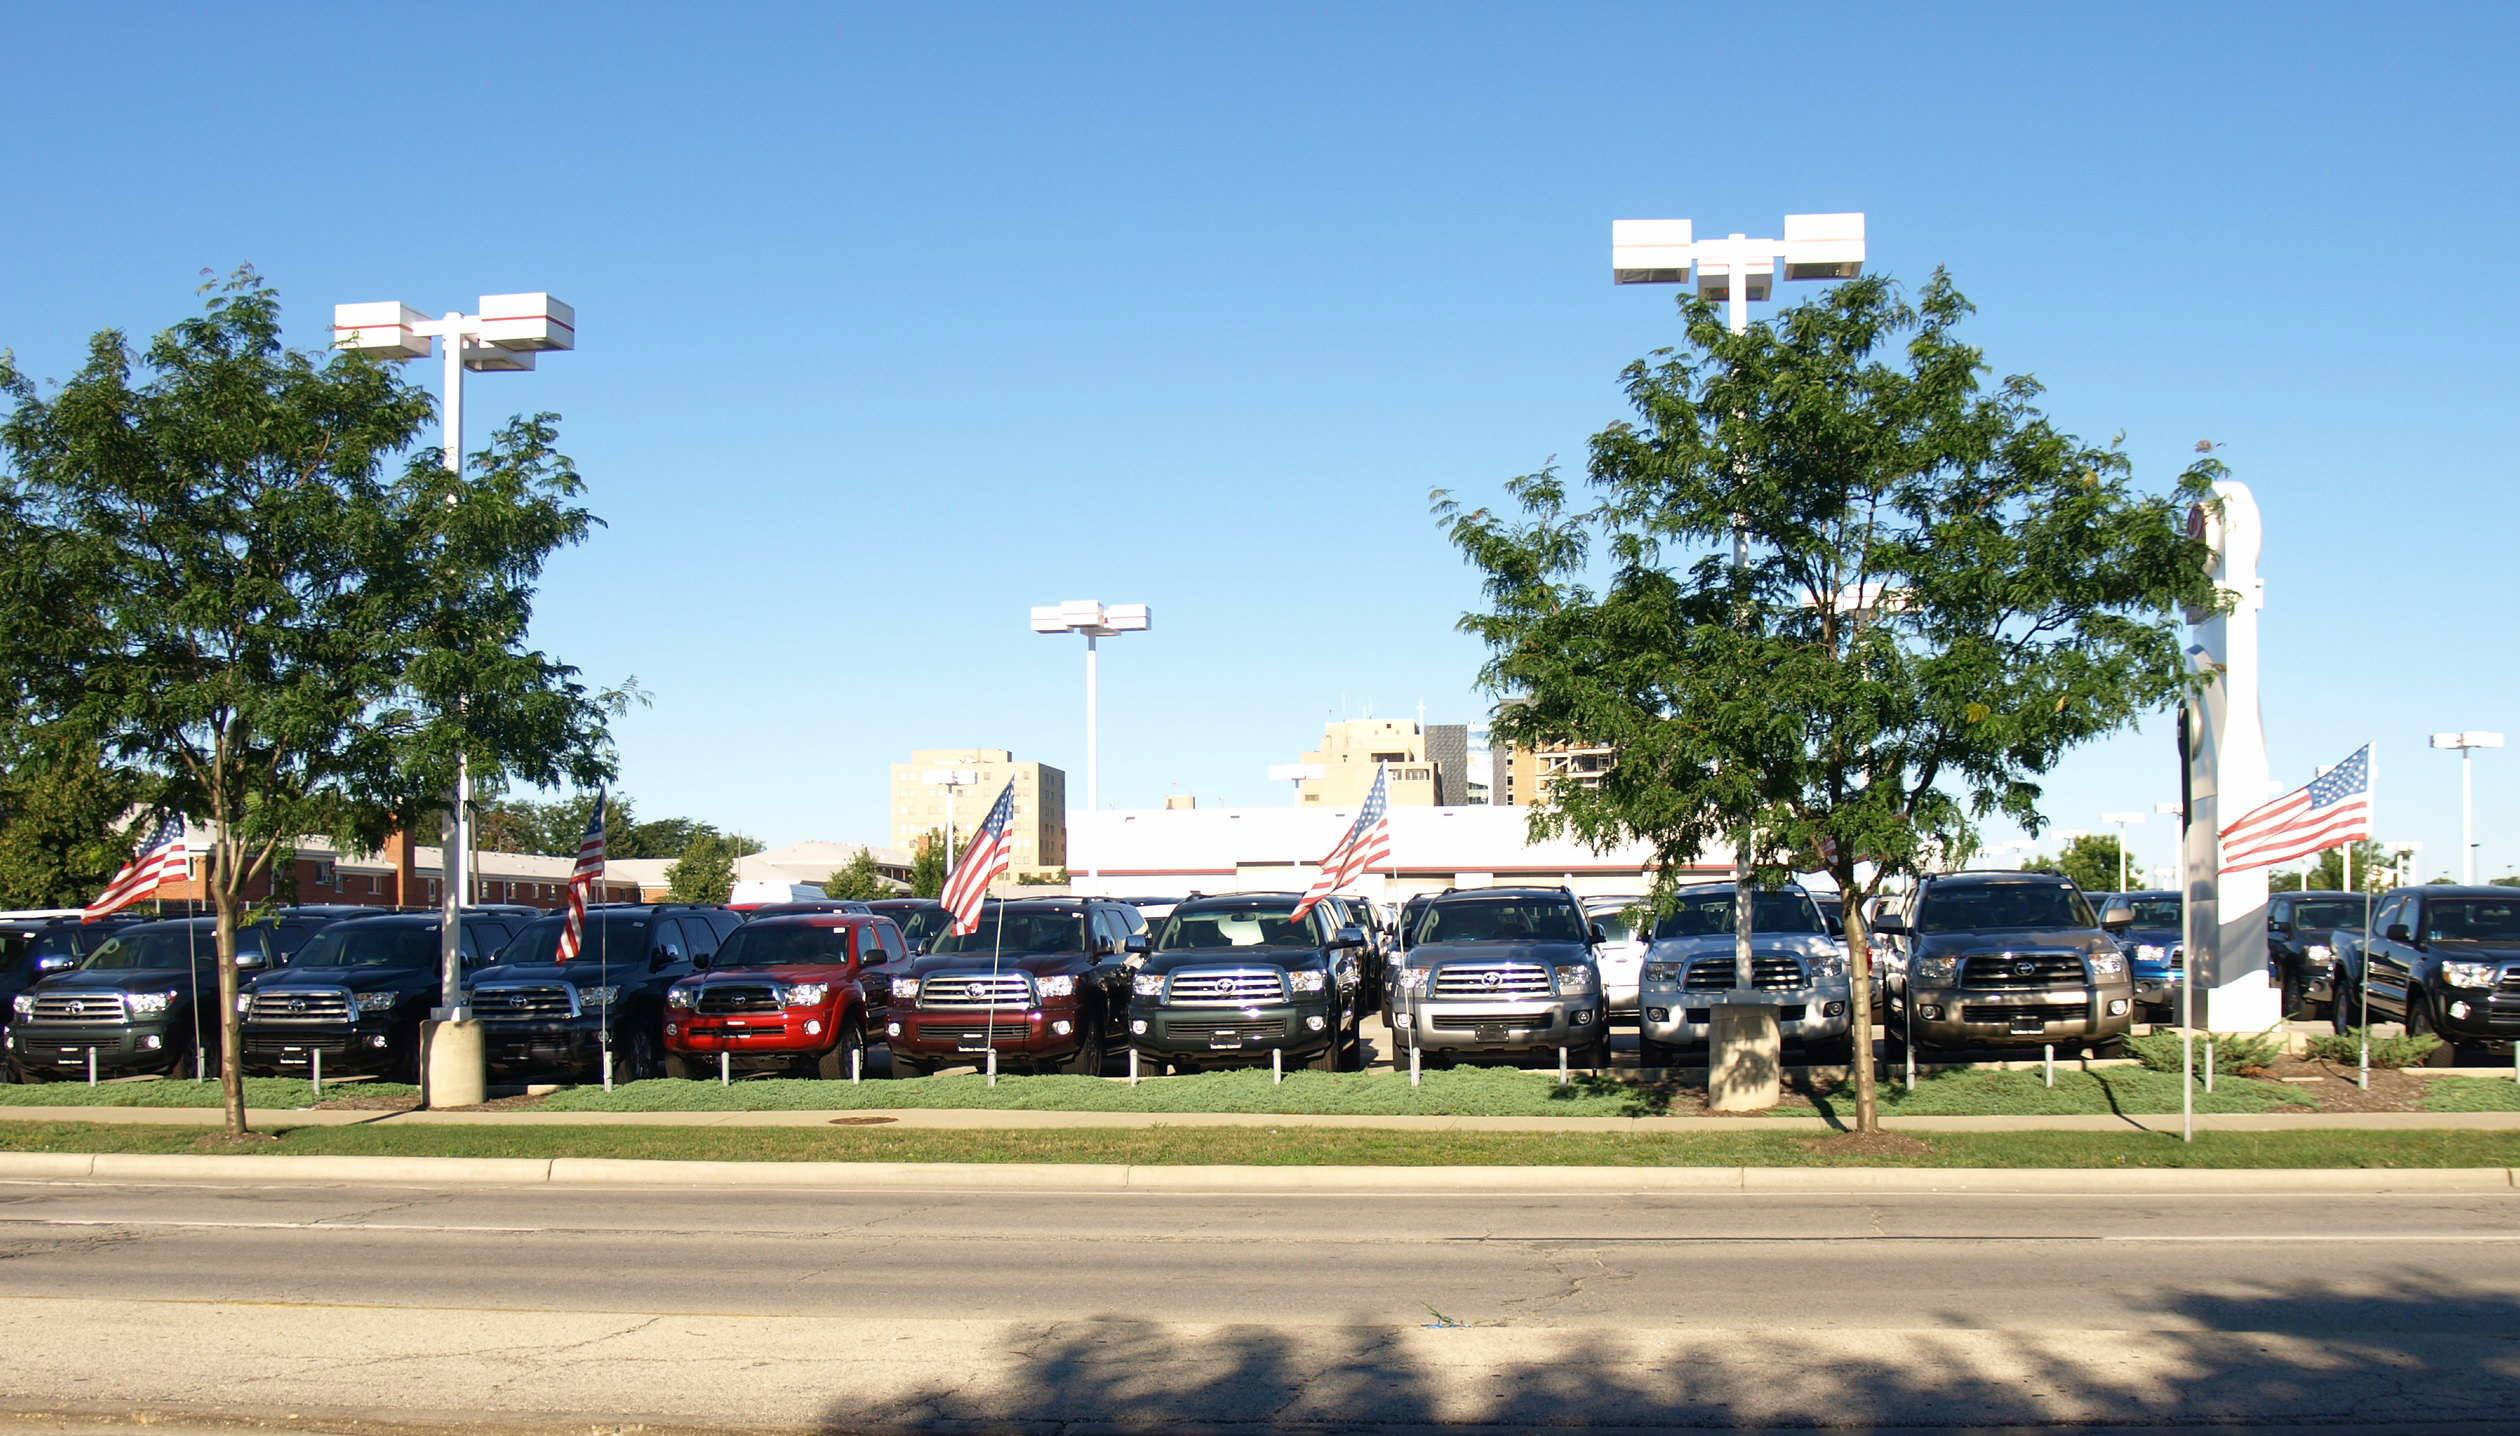 Bredemann Toyota   Park Ridge, Illinois | Automobile / Car Dealer (sales)